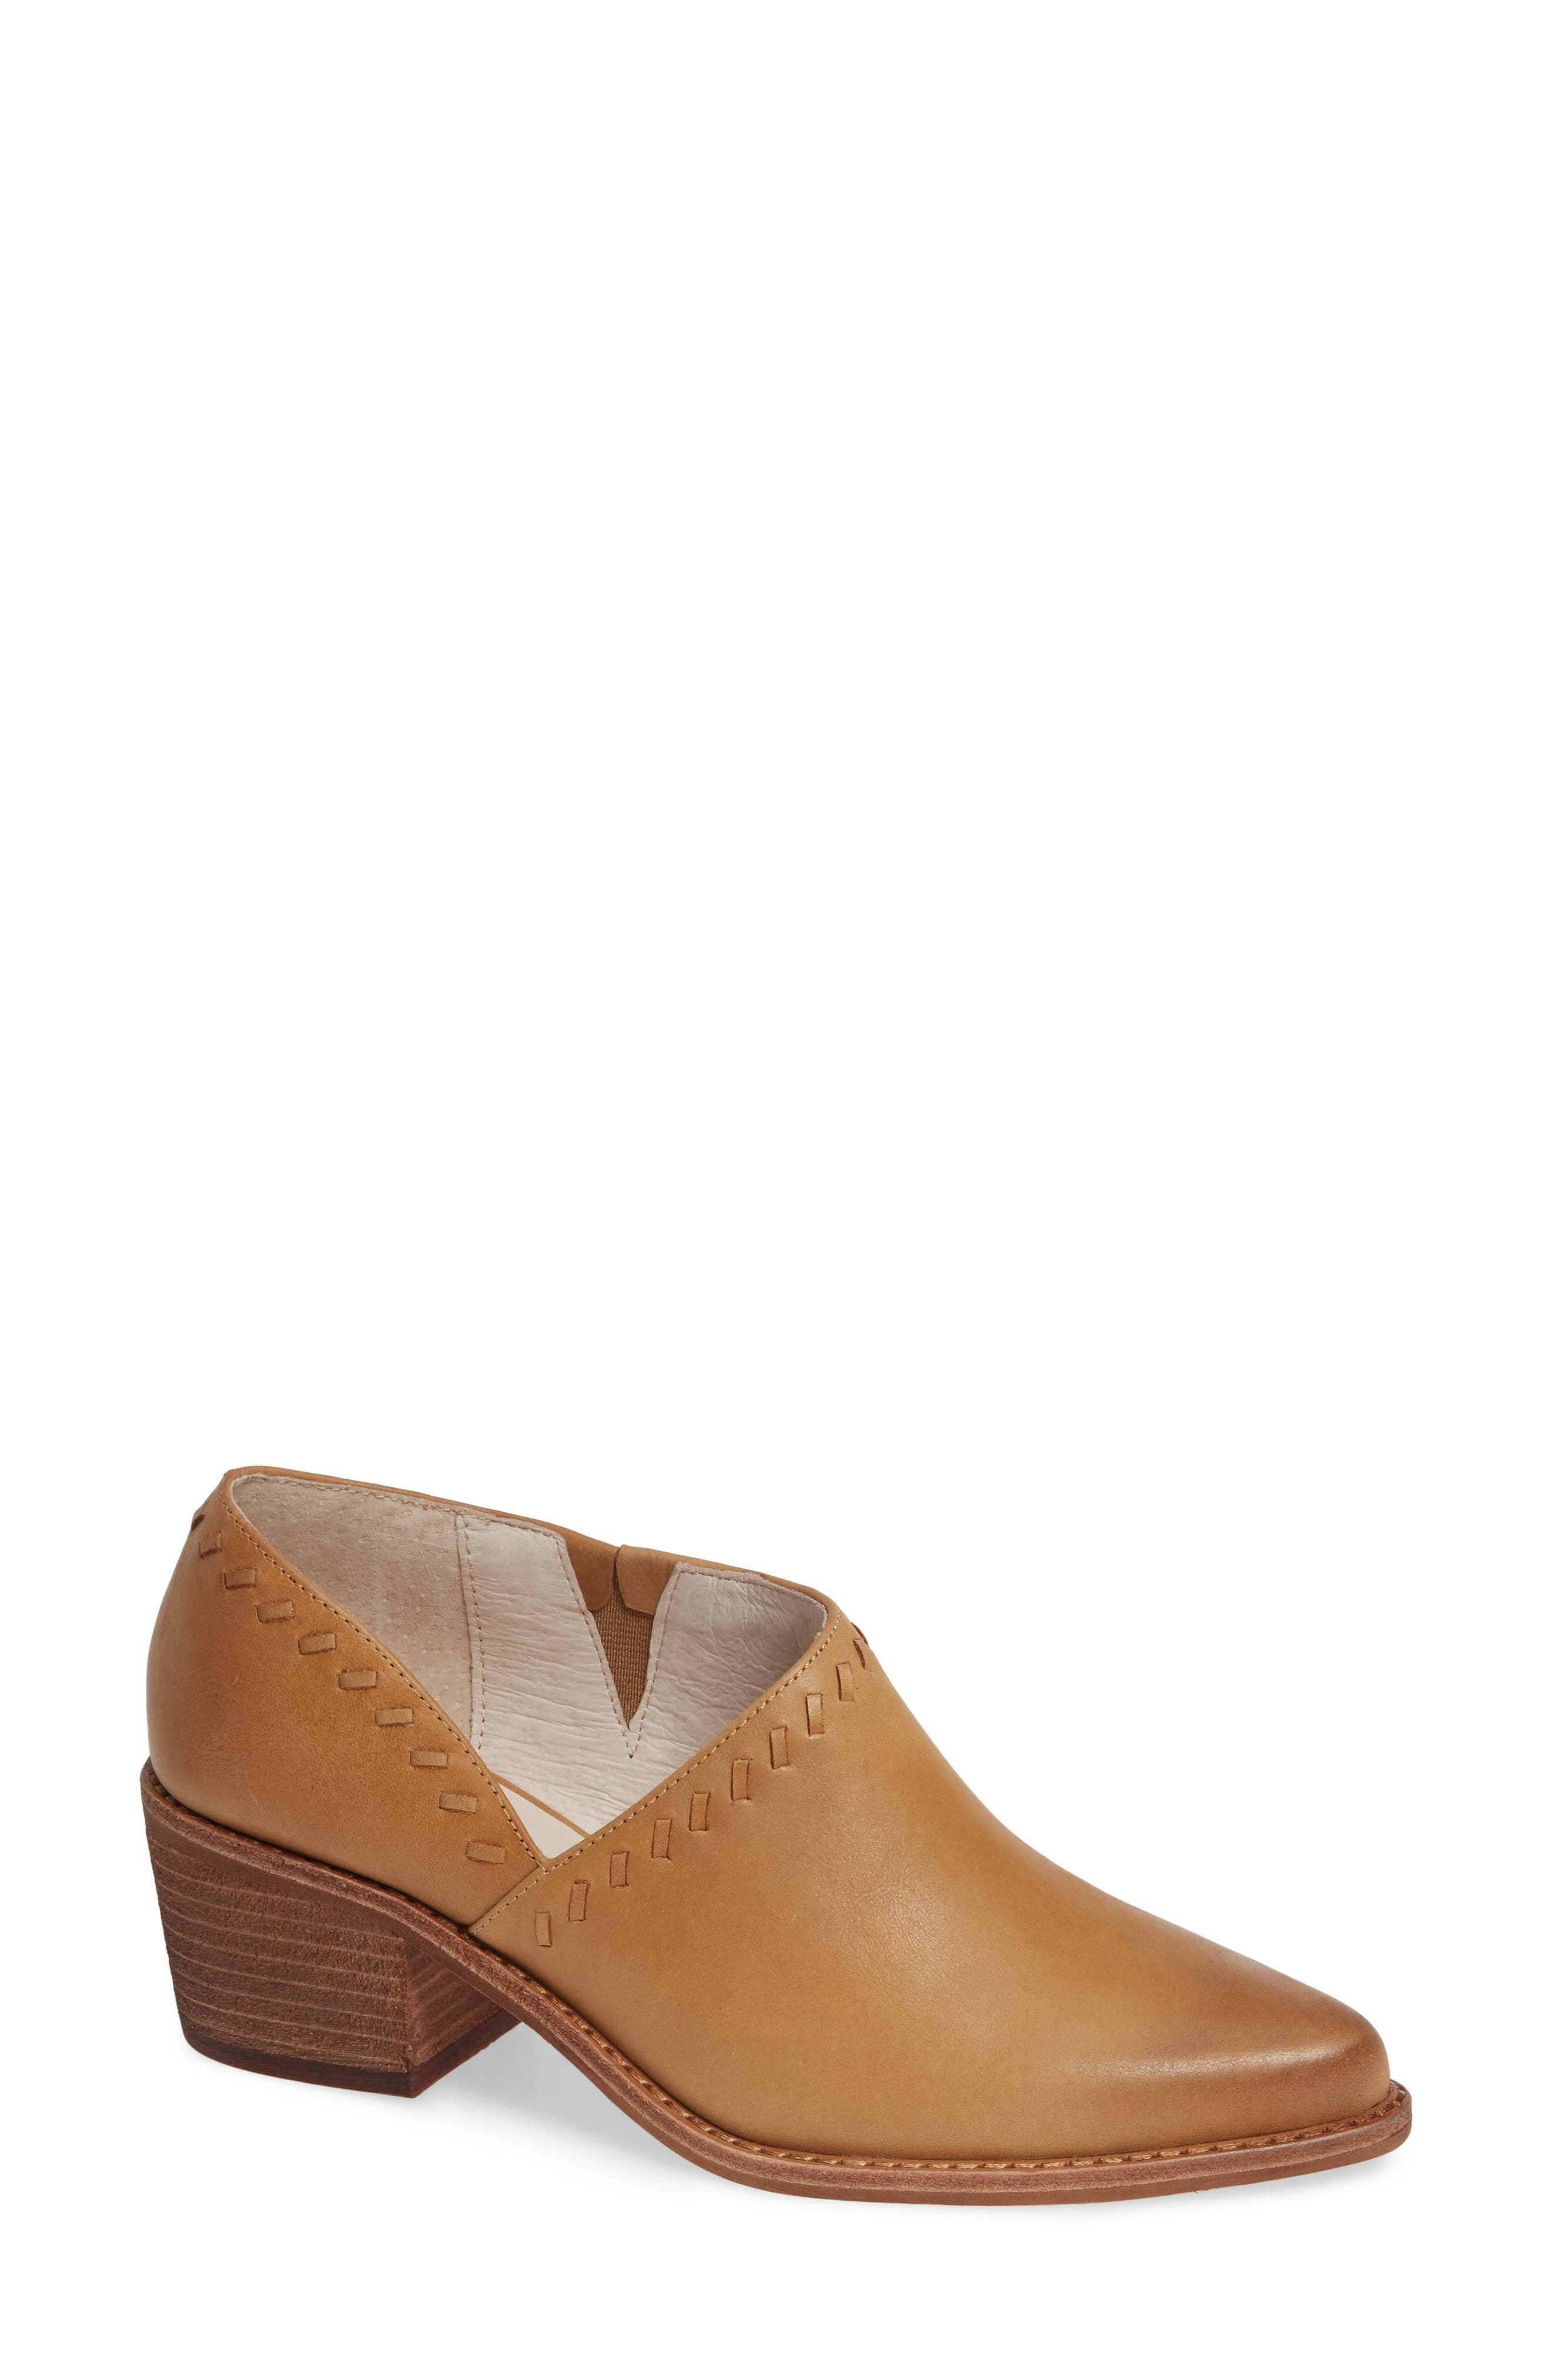 bc2119f5b96 Women s Caslon® Booties   Ankle Boots